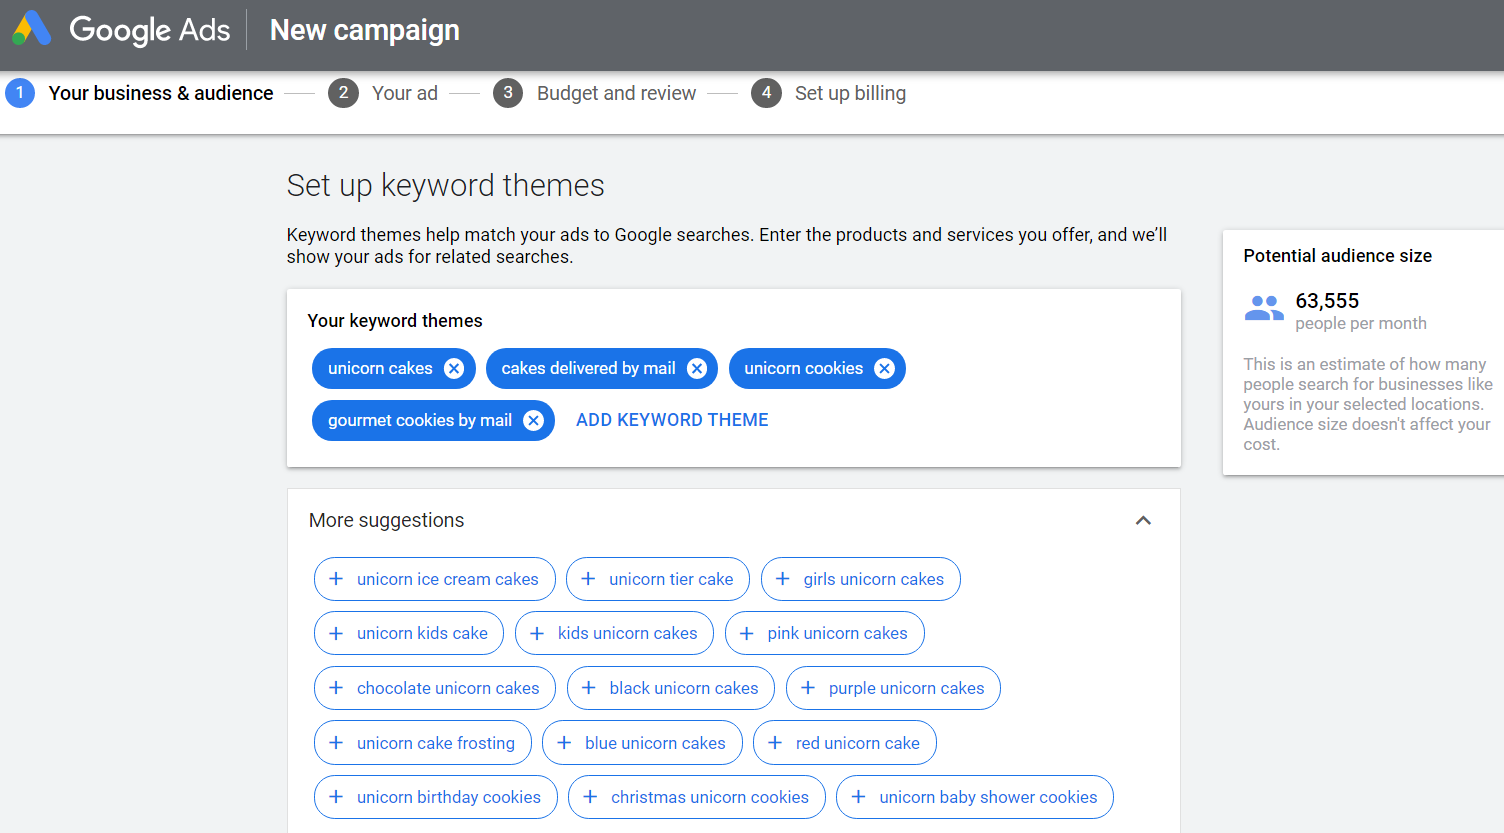 google ads shows related keyword themes when setting up an ad